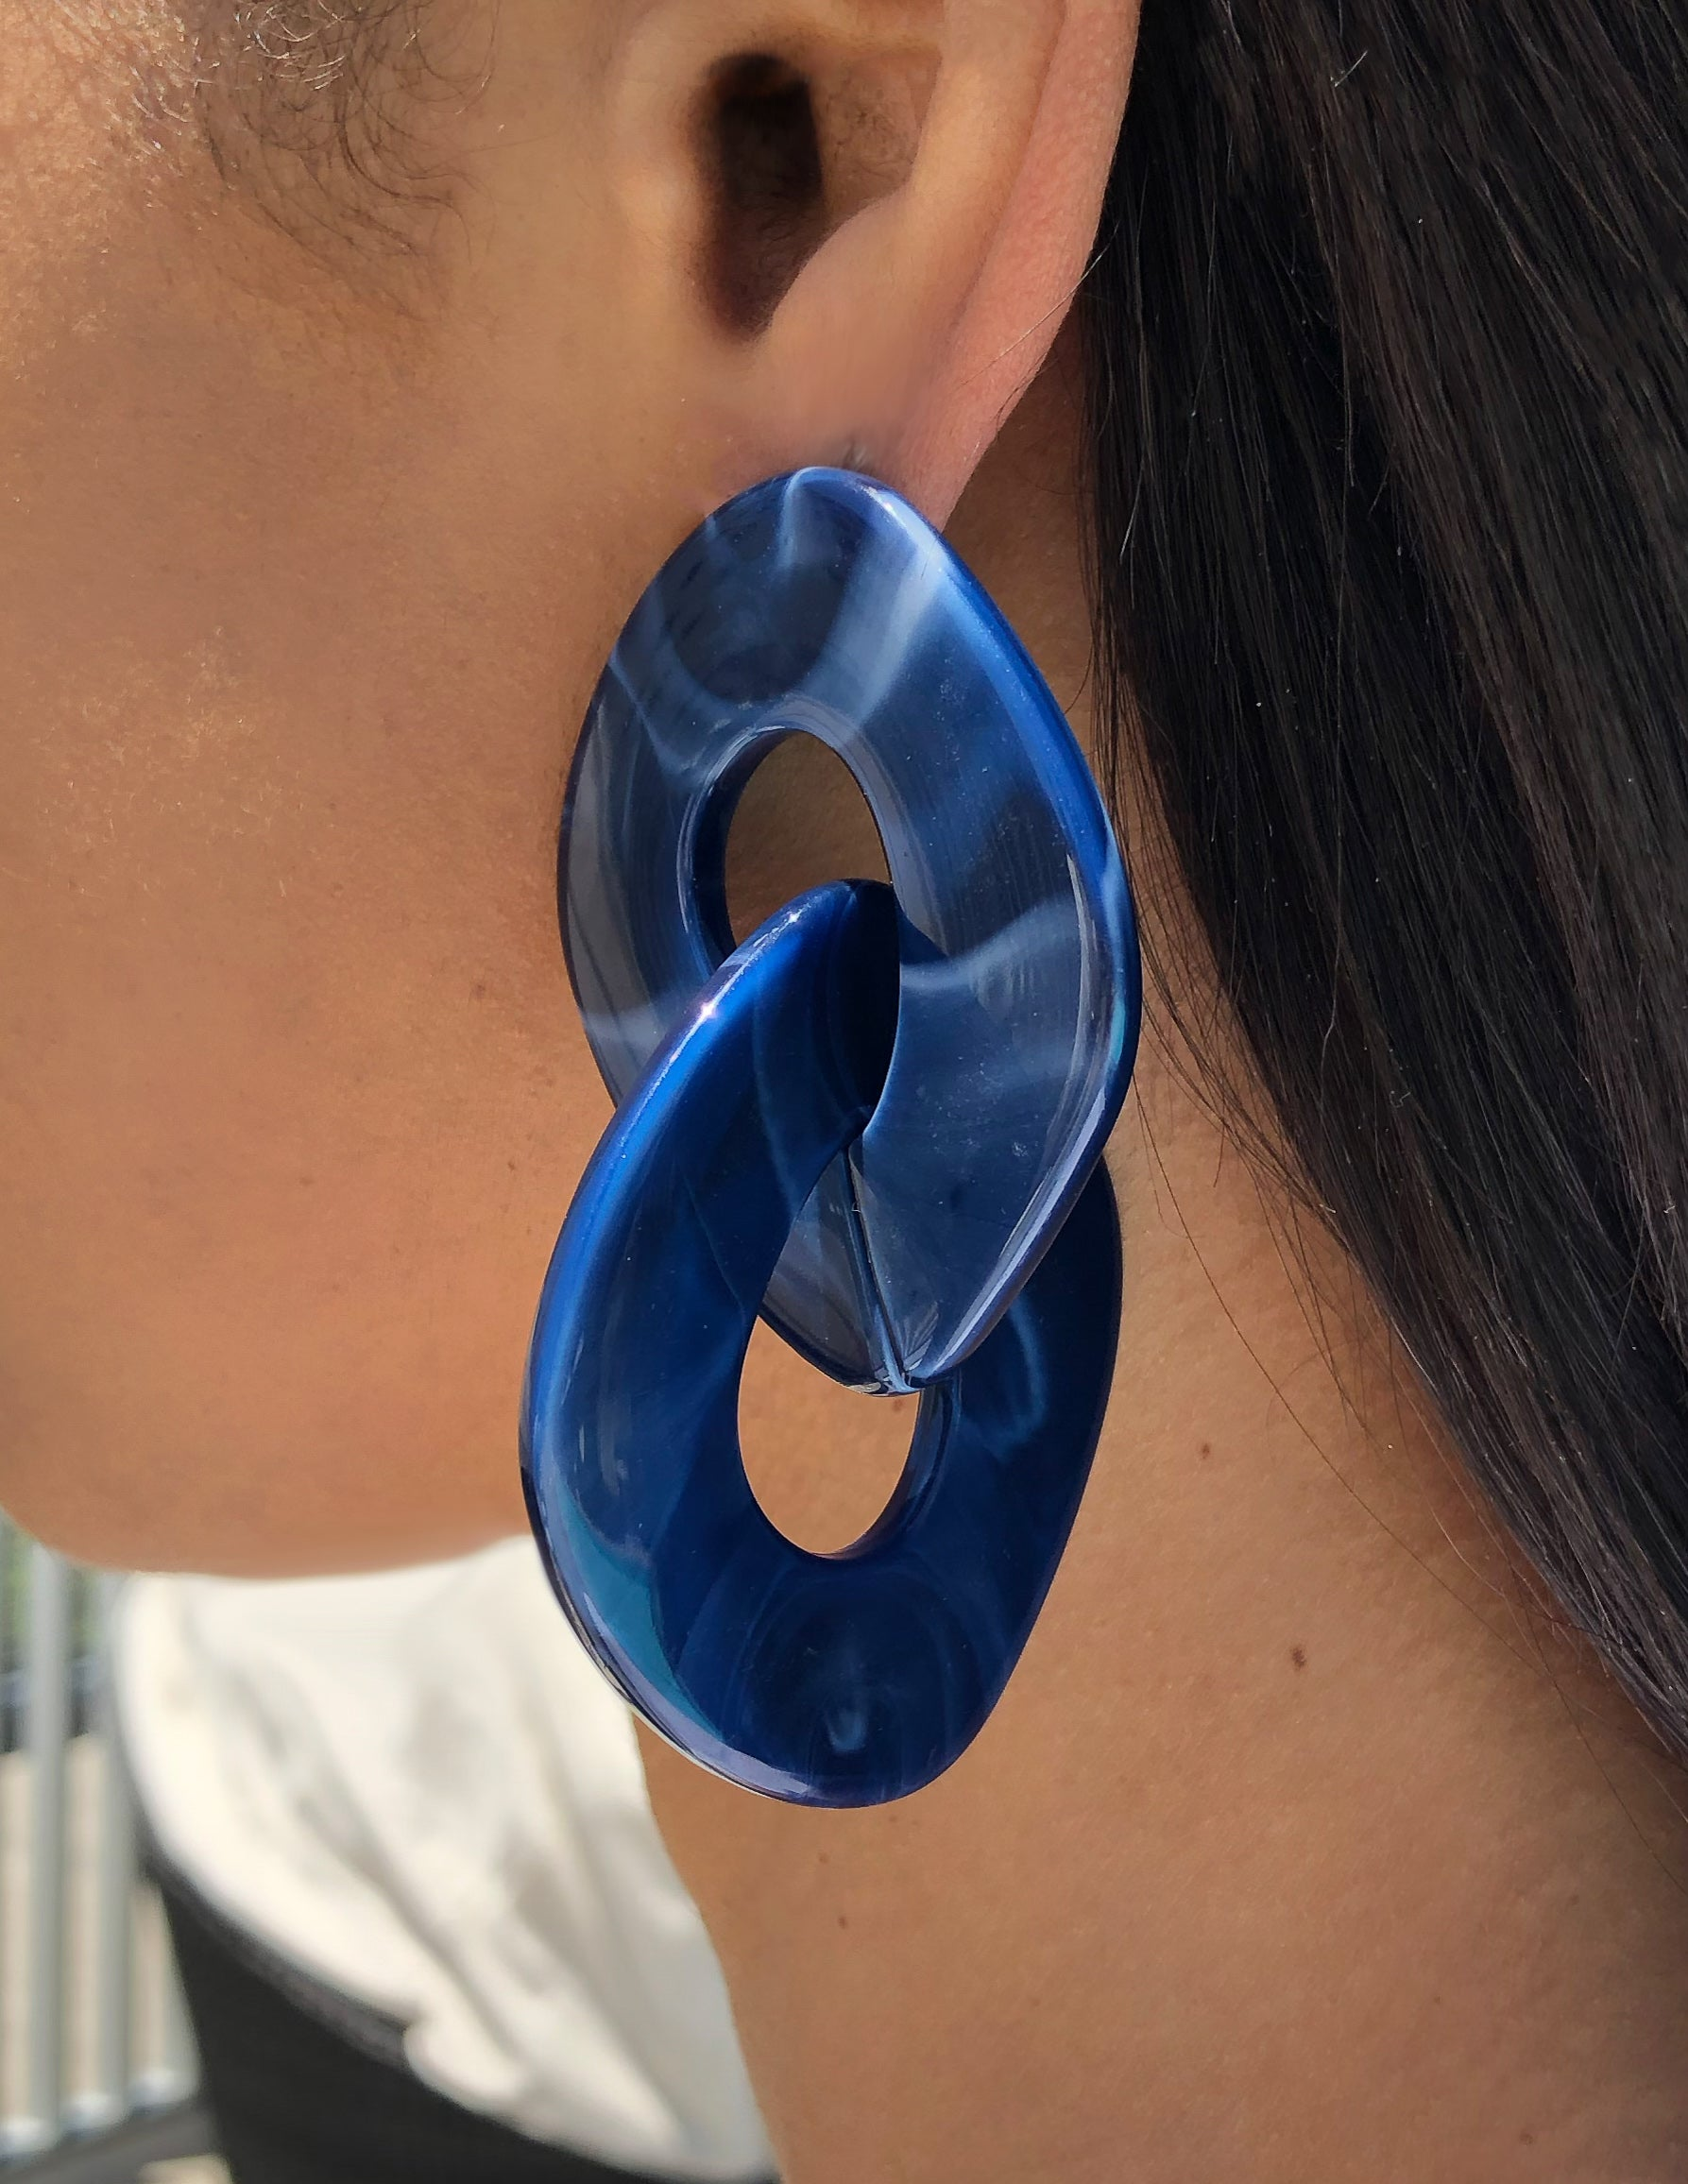 navy, acrylic, funky, thick, interlock, loops, statement, art, deco, marble, earrings, oversized, influencer, trendy, chic